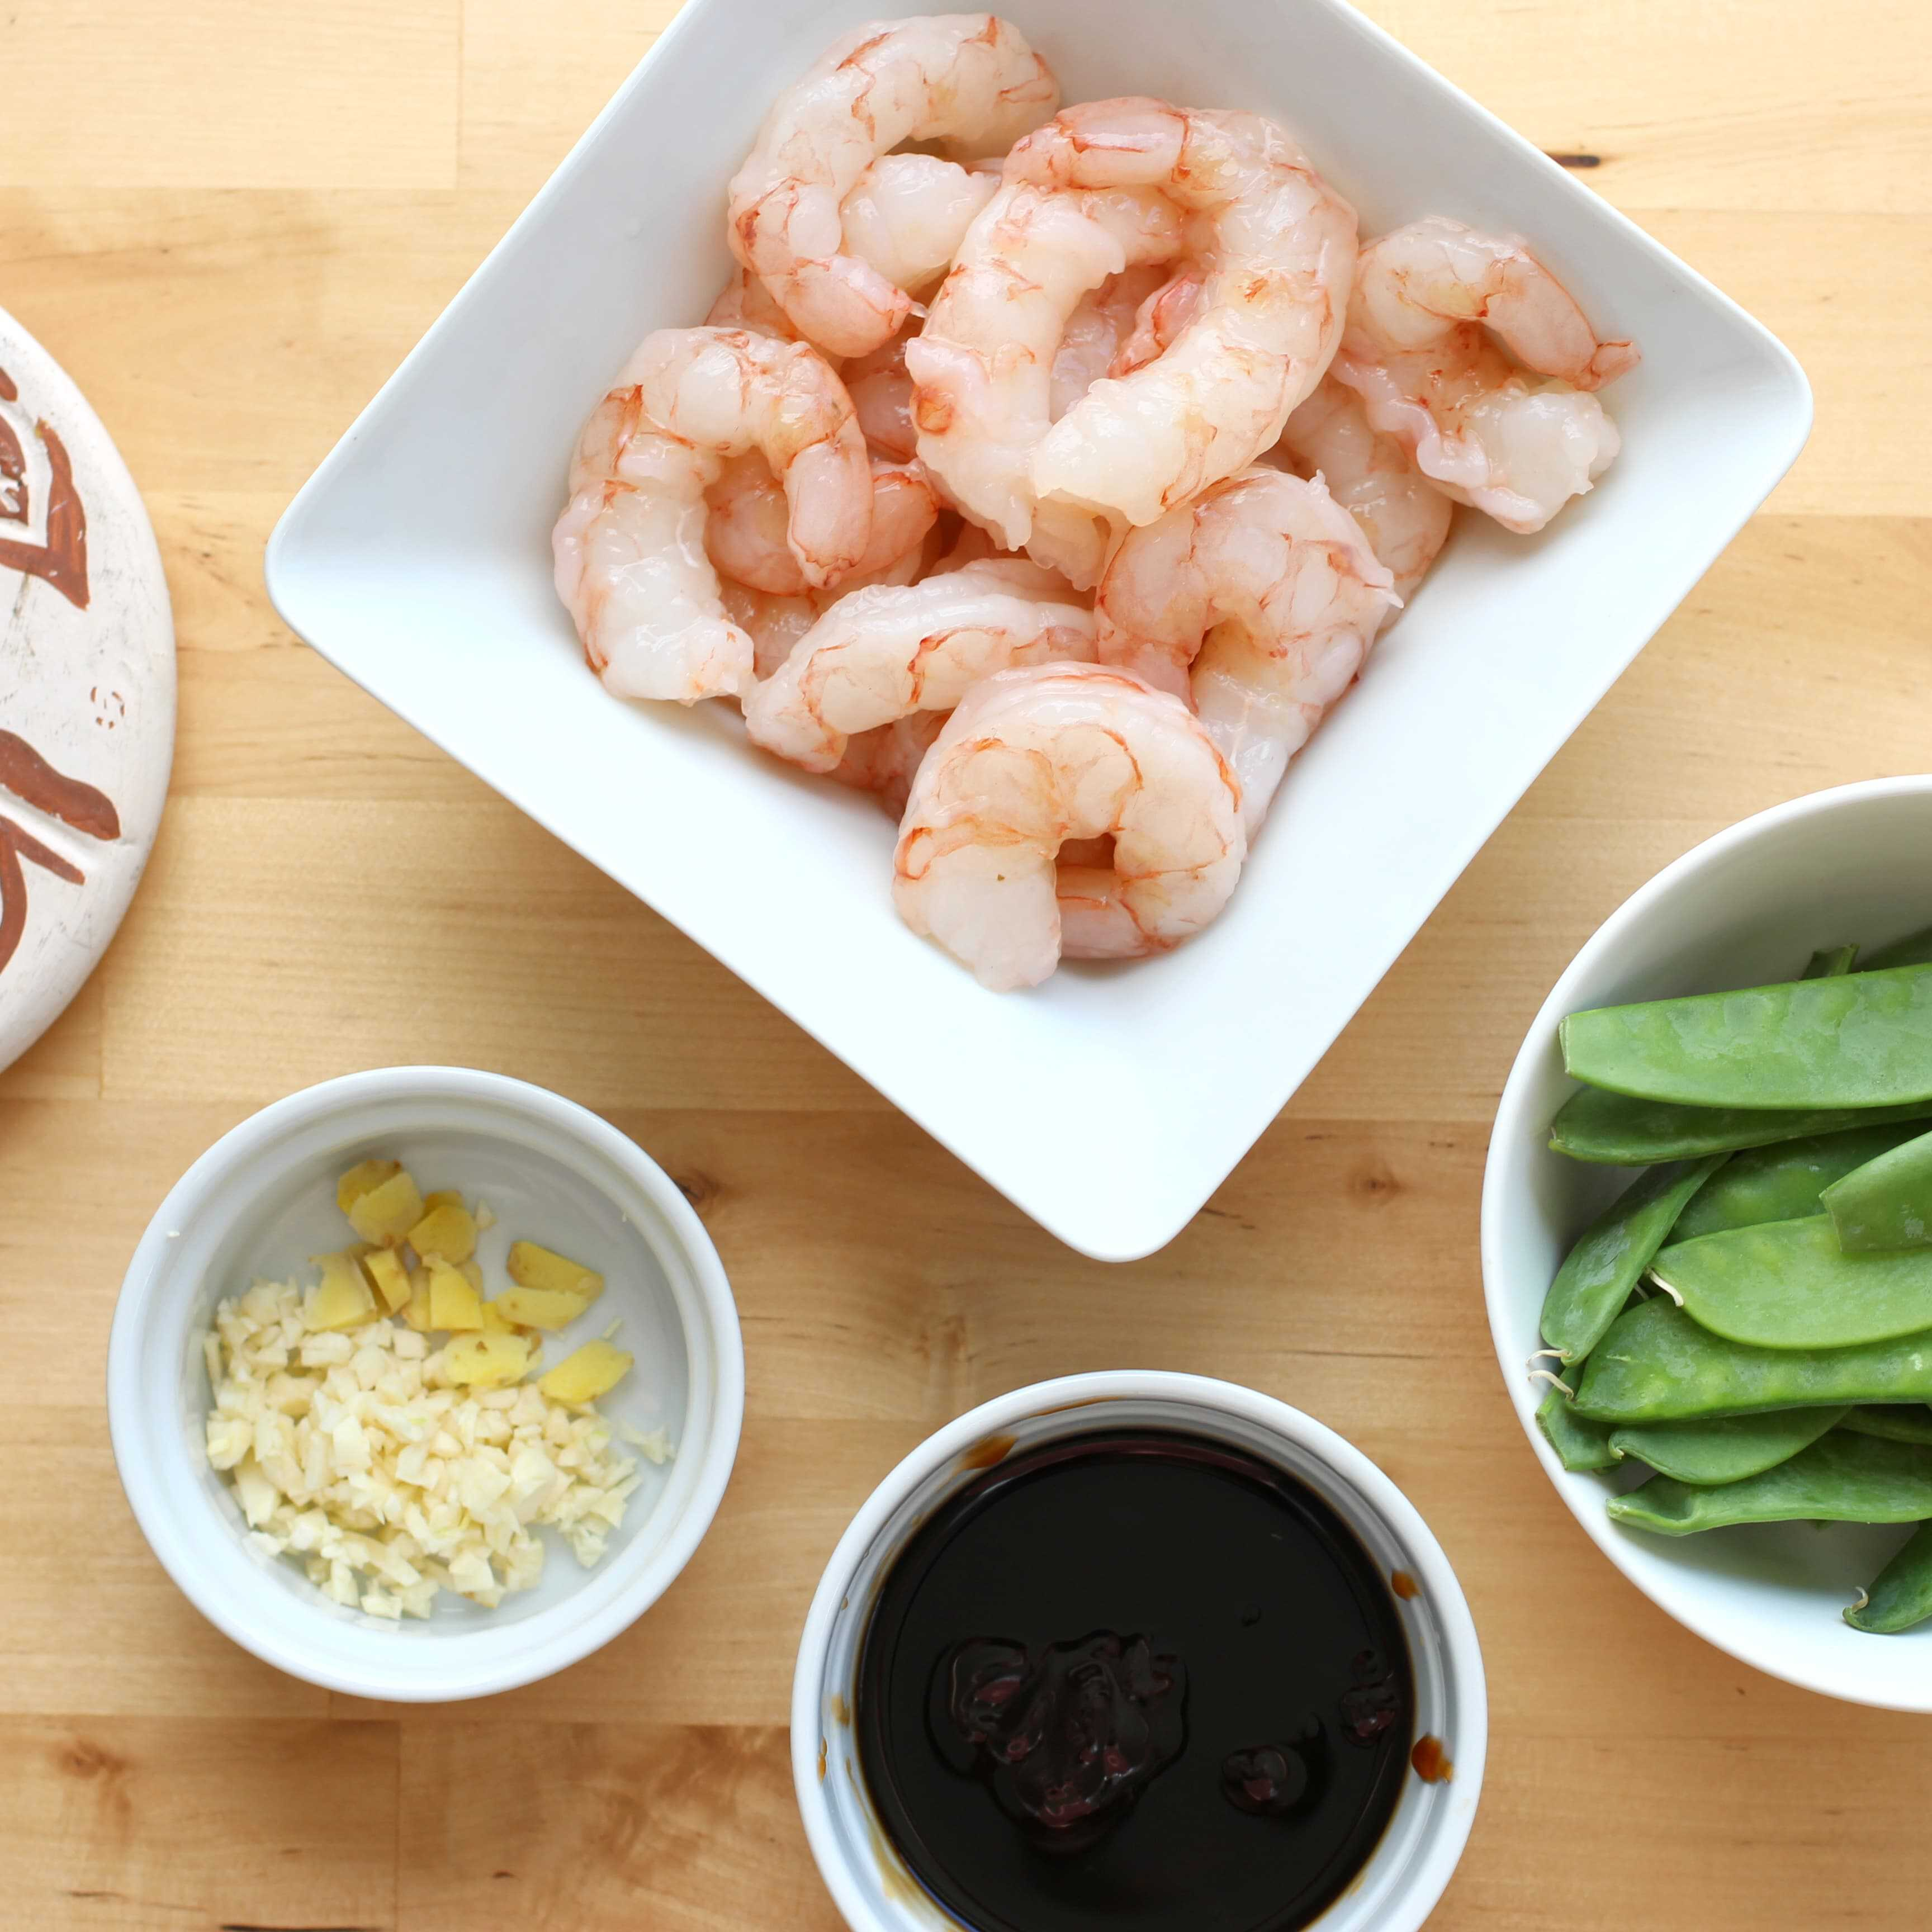 Shrimp and Snow Pea Stir Fry with Savory Sweet Sauce